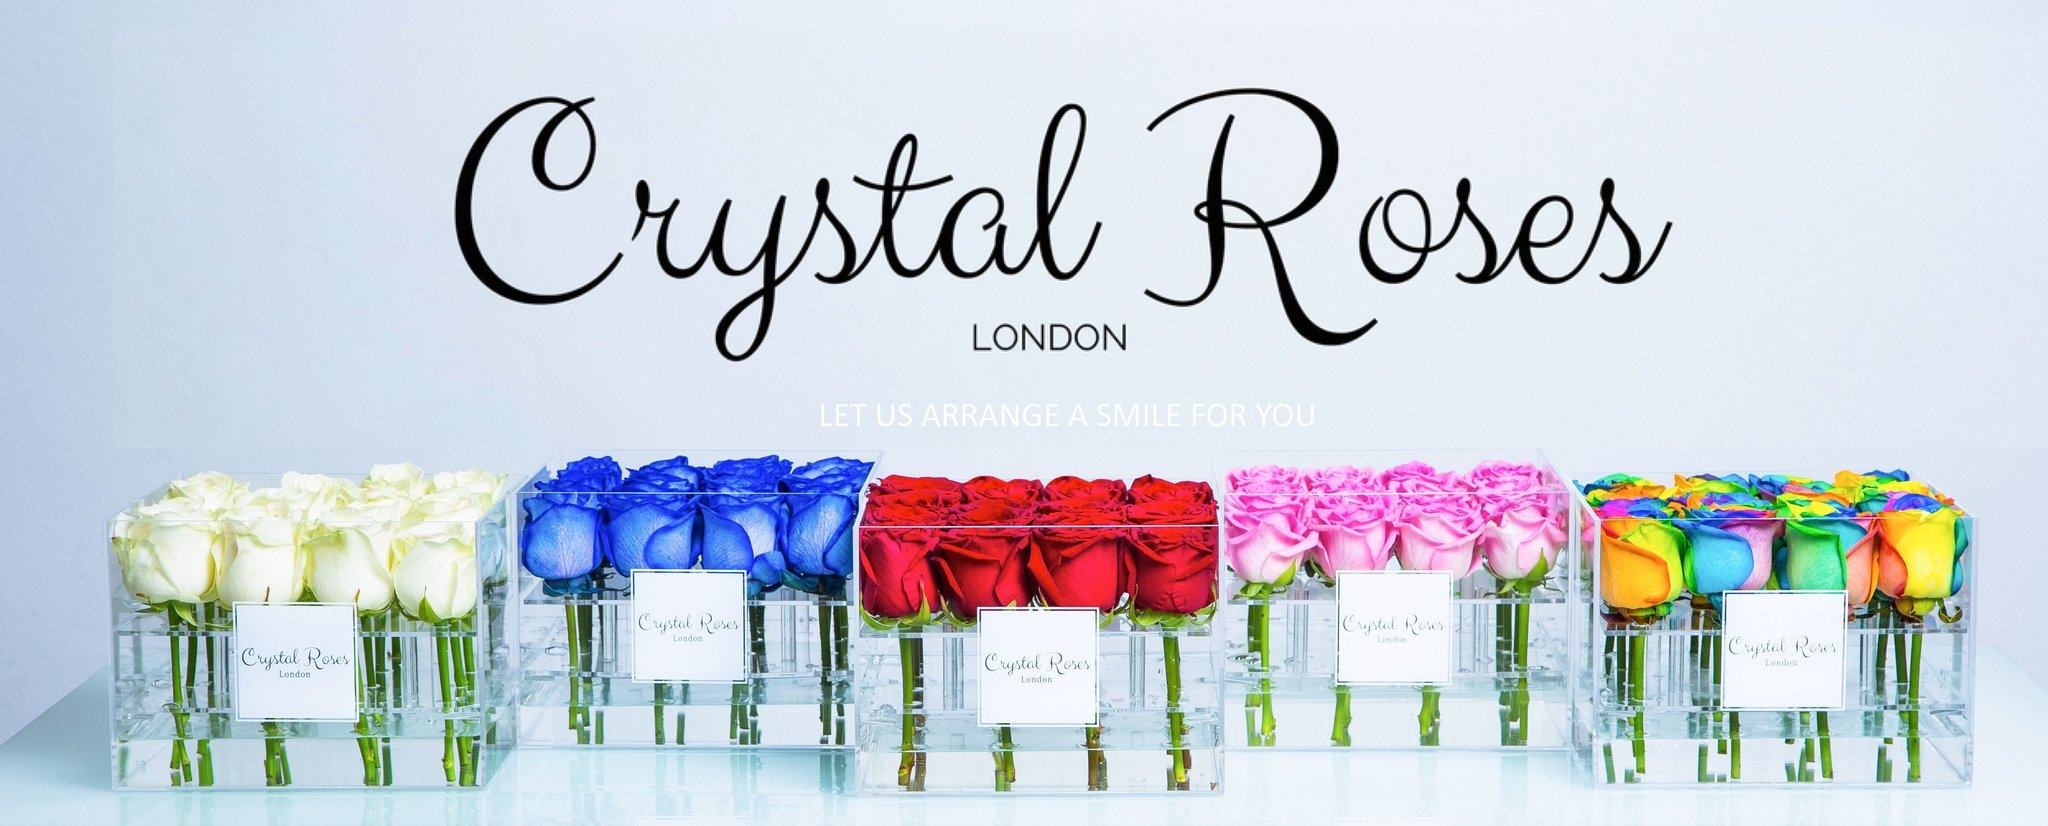 Crystal Roses London (@crystalroselondon) Cover Image